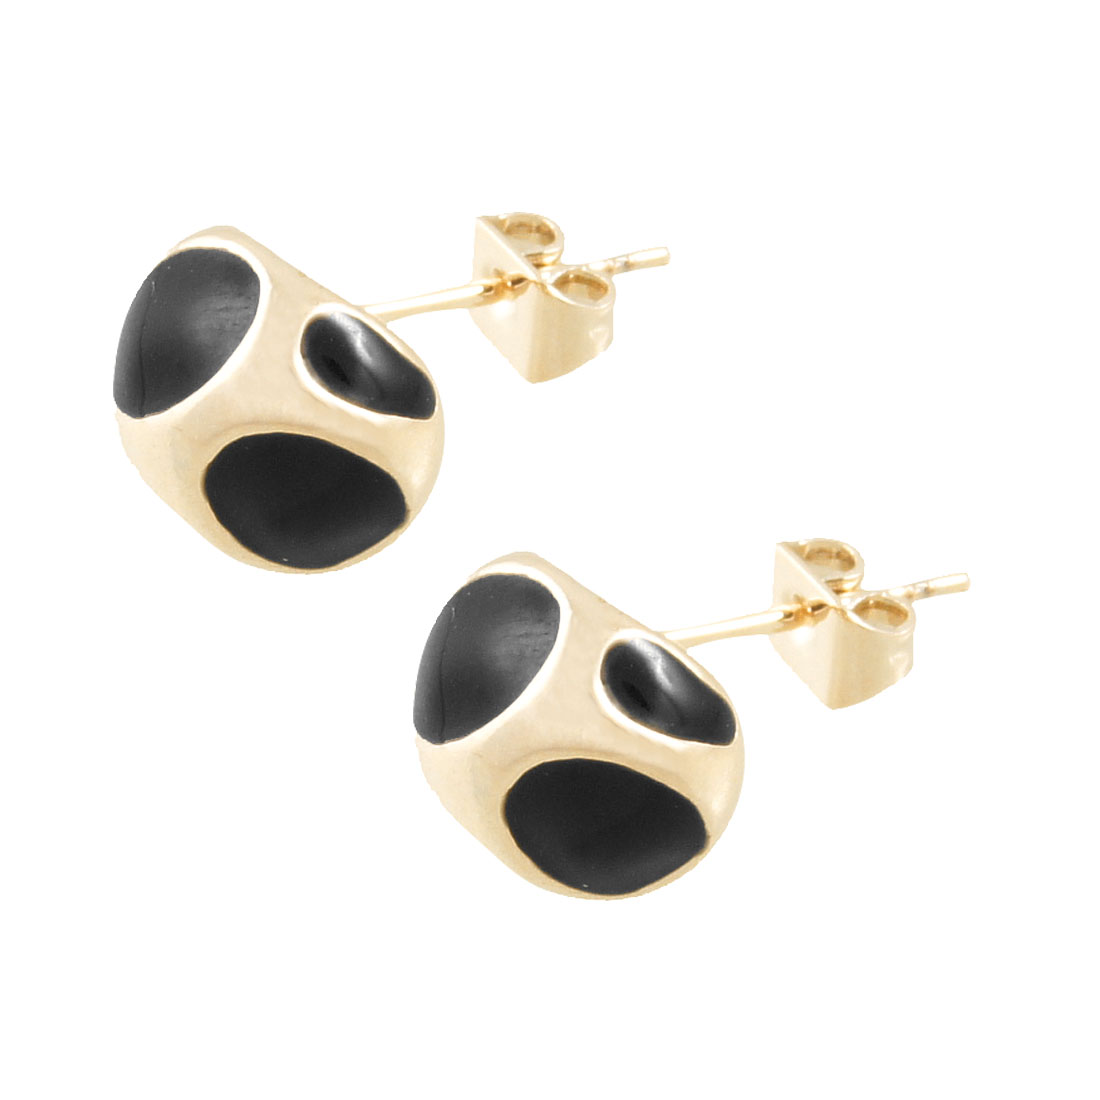 Pair Enameled Oval Printed Stud Earrings Jewelry Gold Tone Black